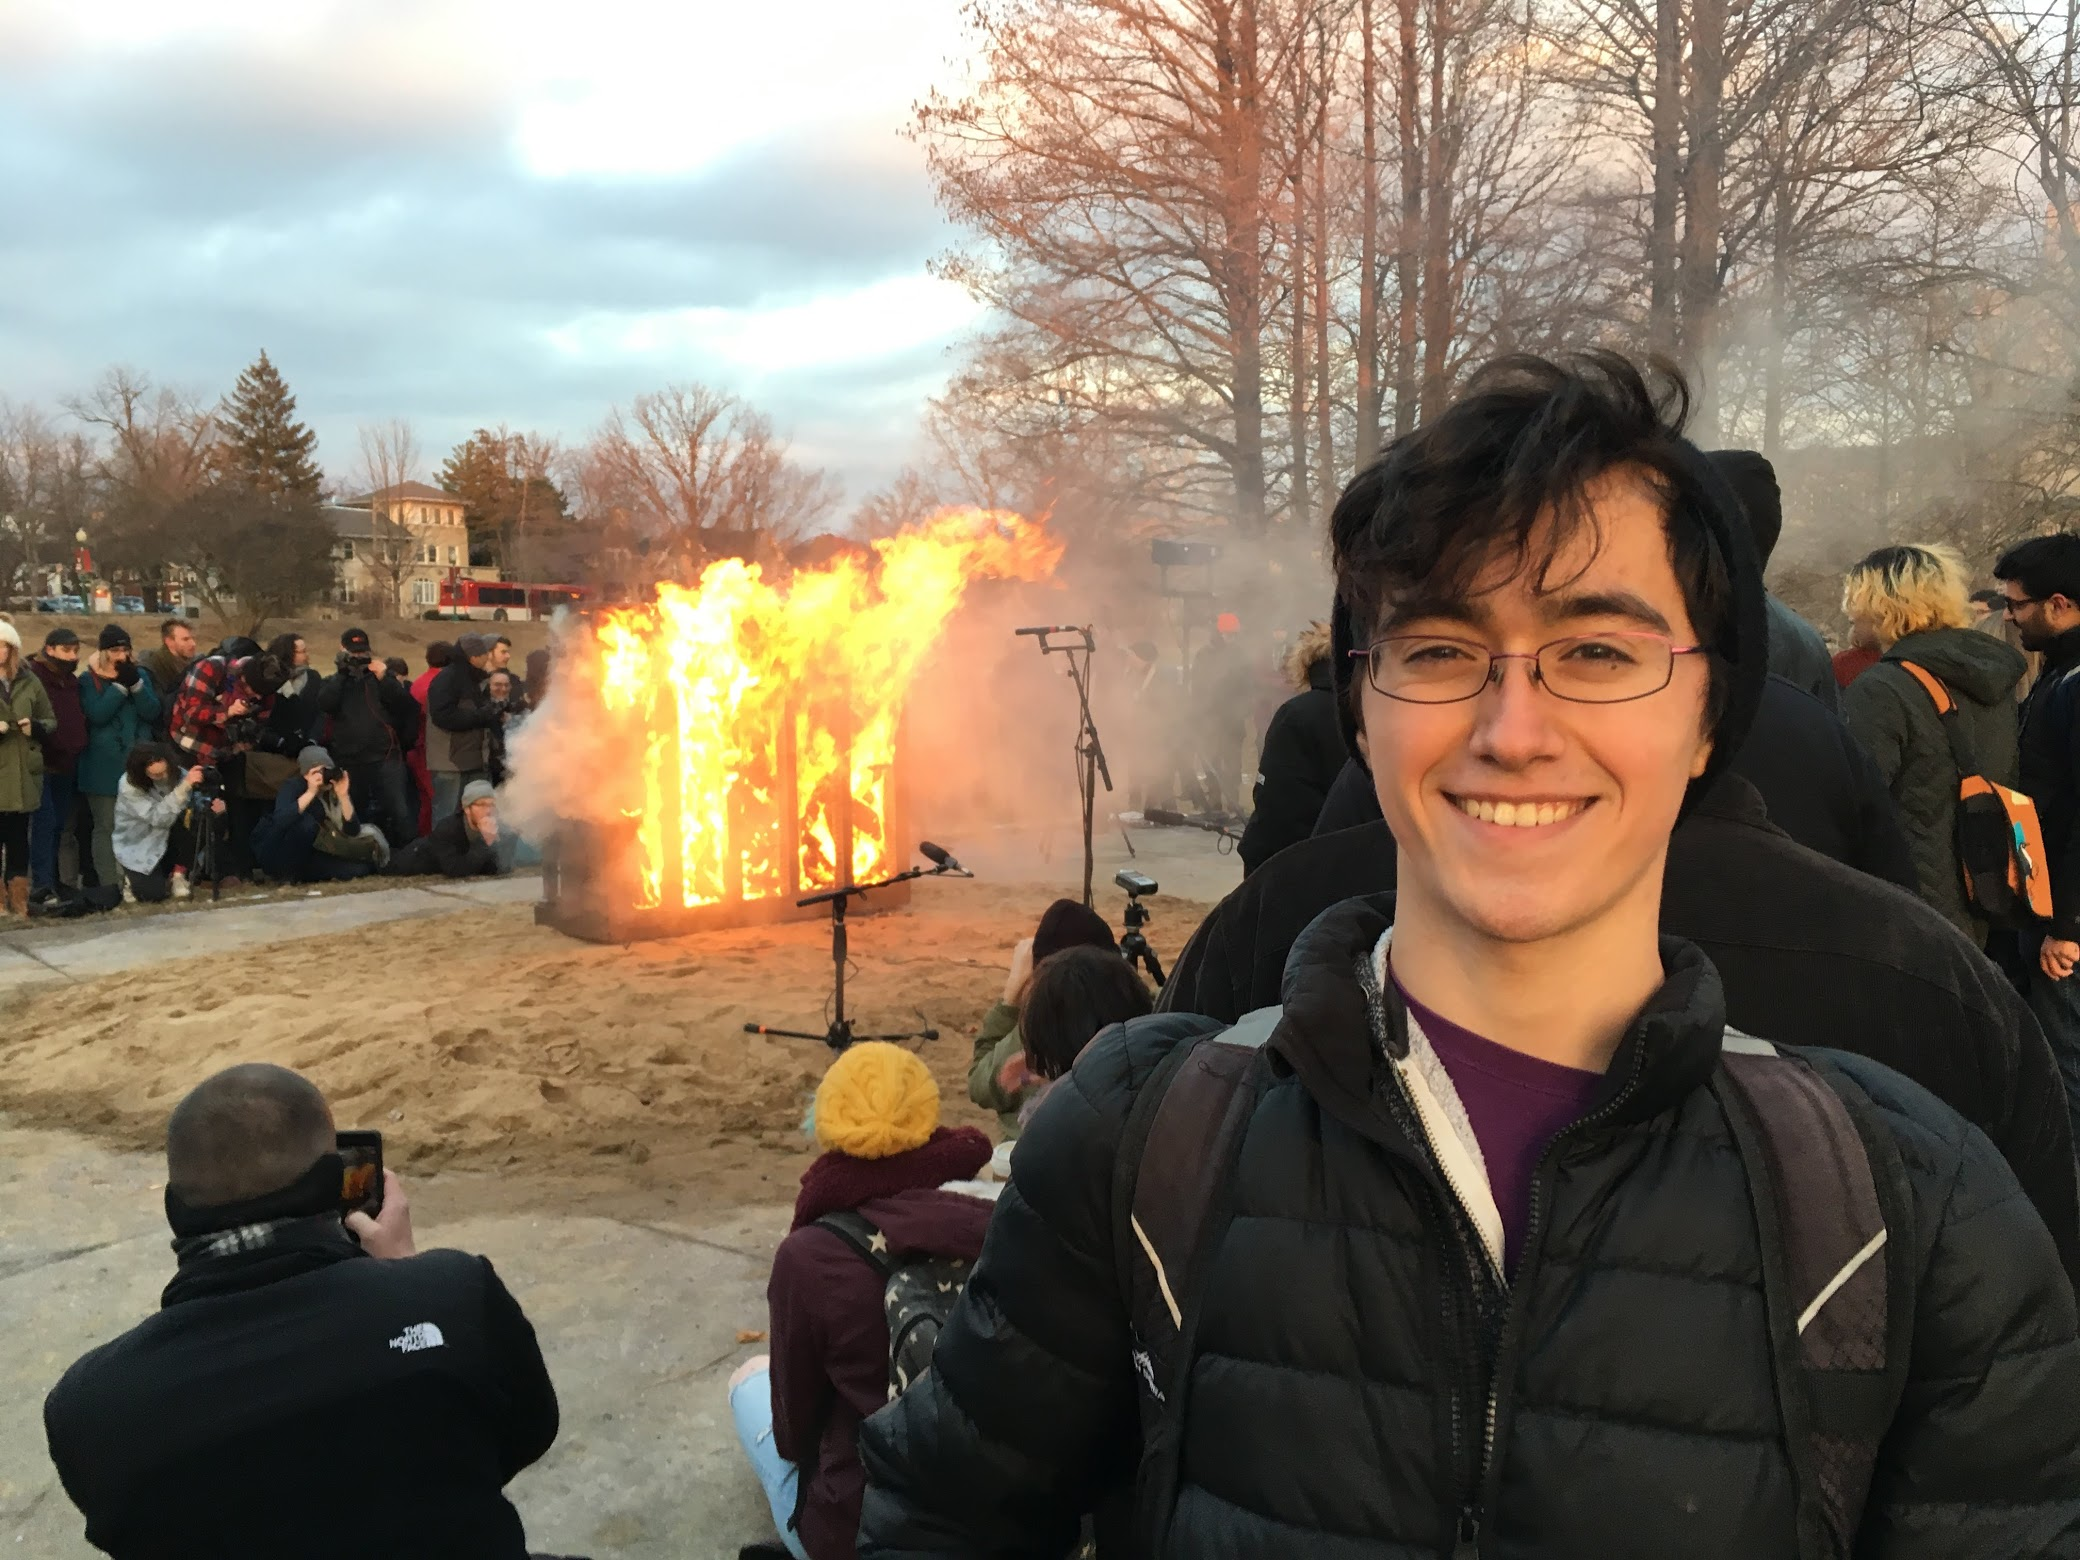 """photo by  John William Griffith II   February 7, 2018 - performance of """"Piano Burning"""" by Annea Lockwood  Indiana University, Dunn Meadow"""